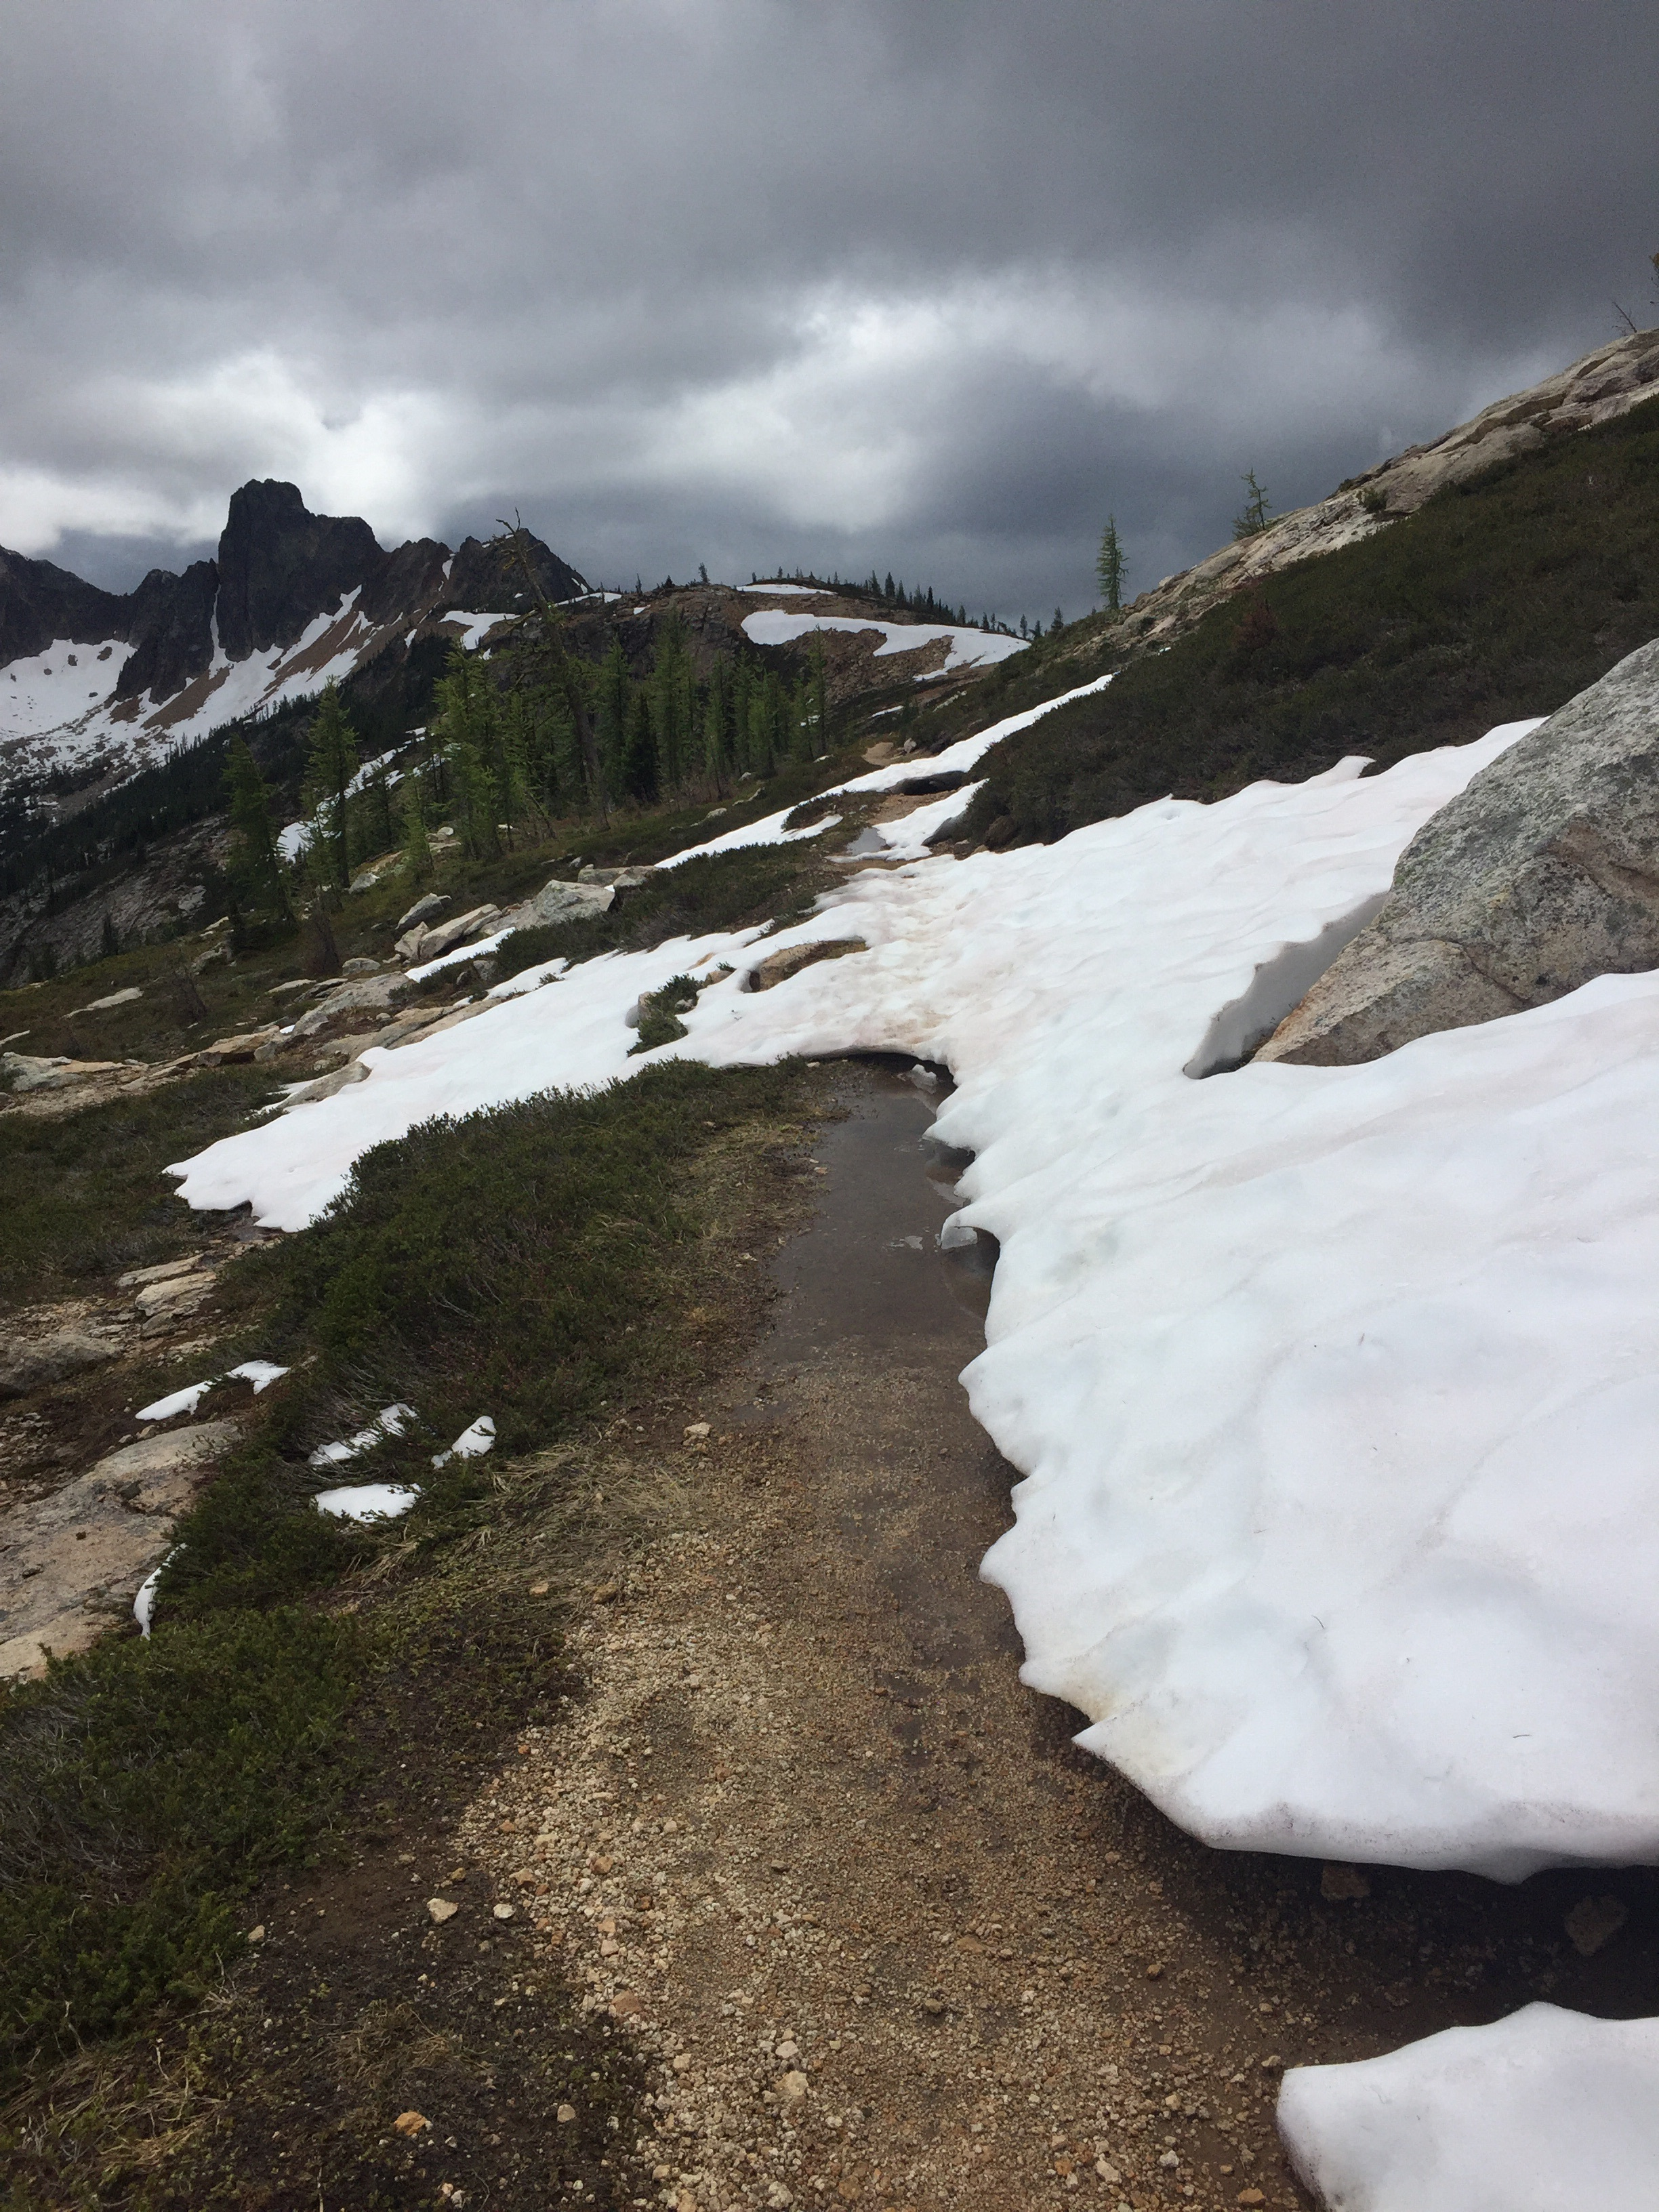 Dramatic weather as we near Cutthroat Pass